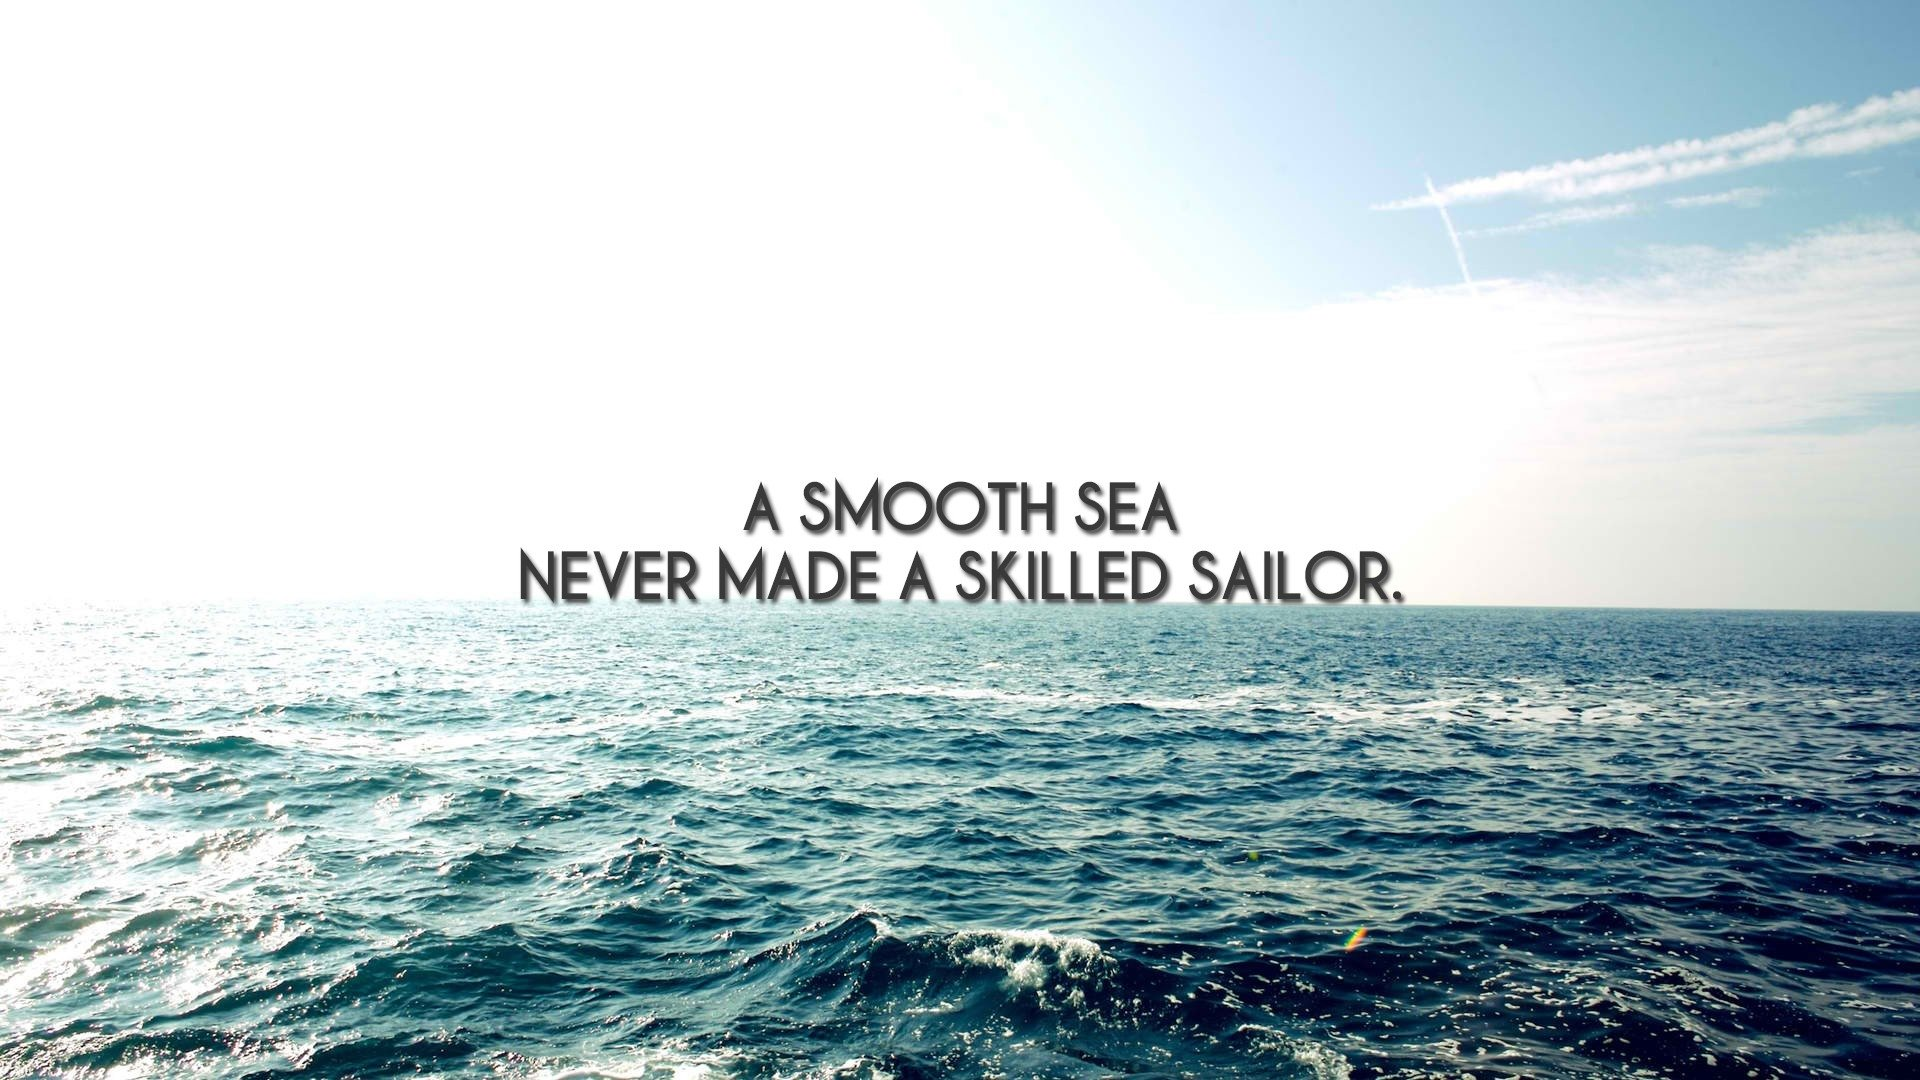 [image] a smooth sea never made a skilled sailor